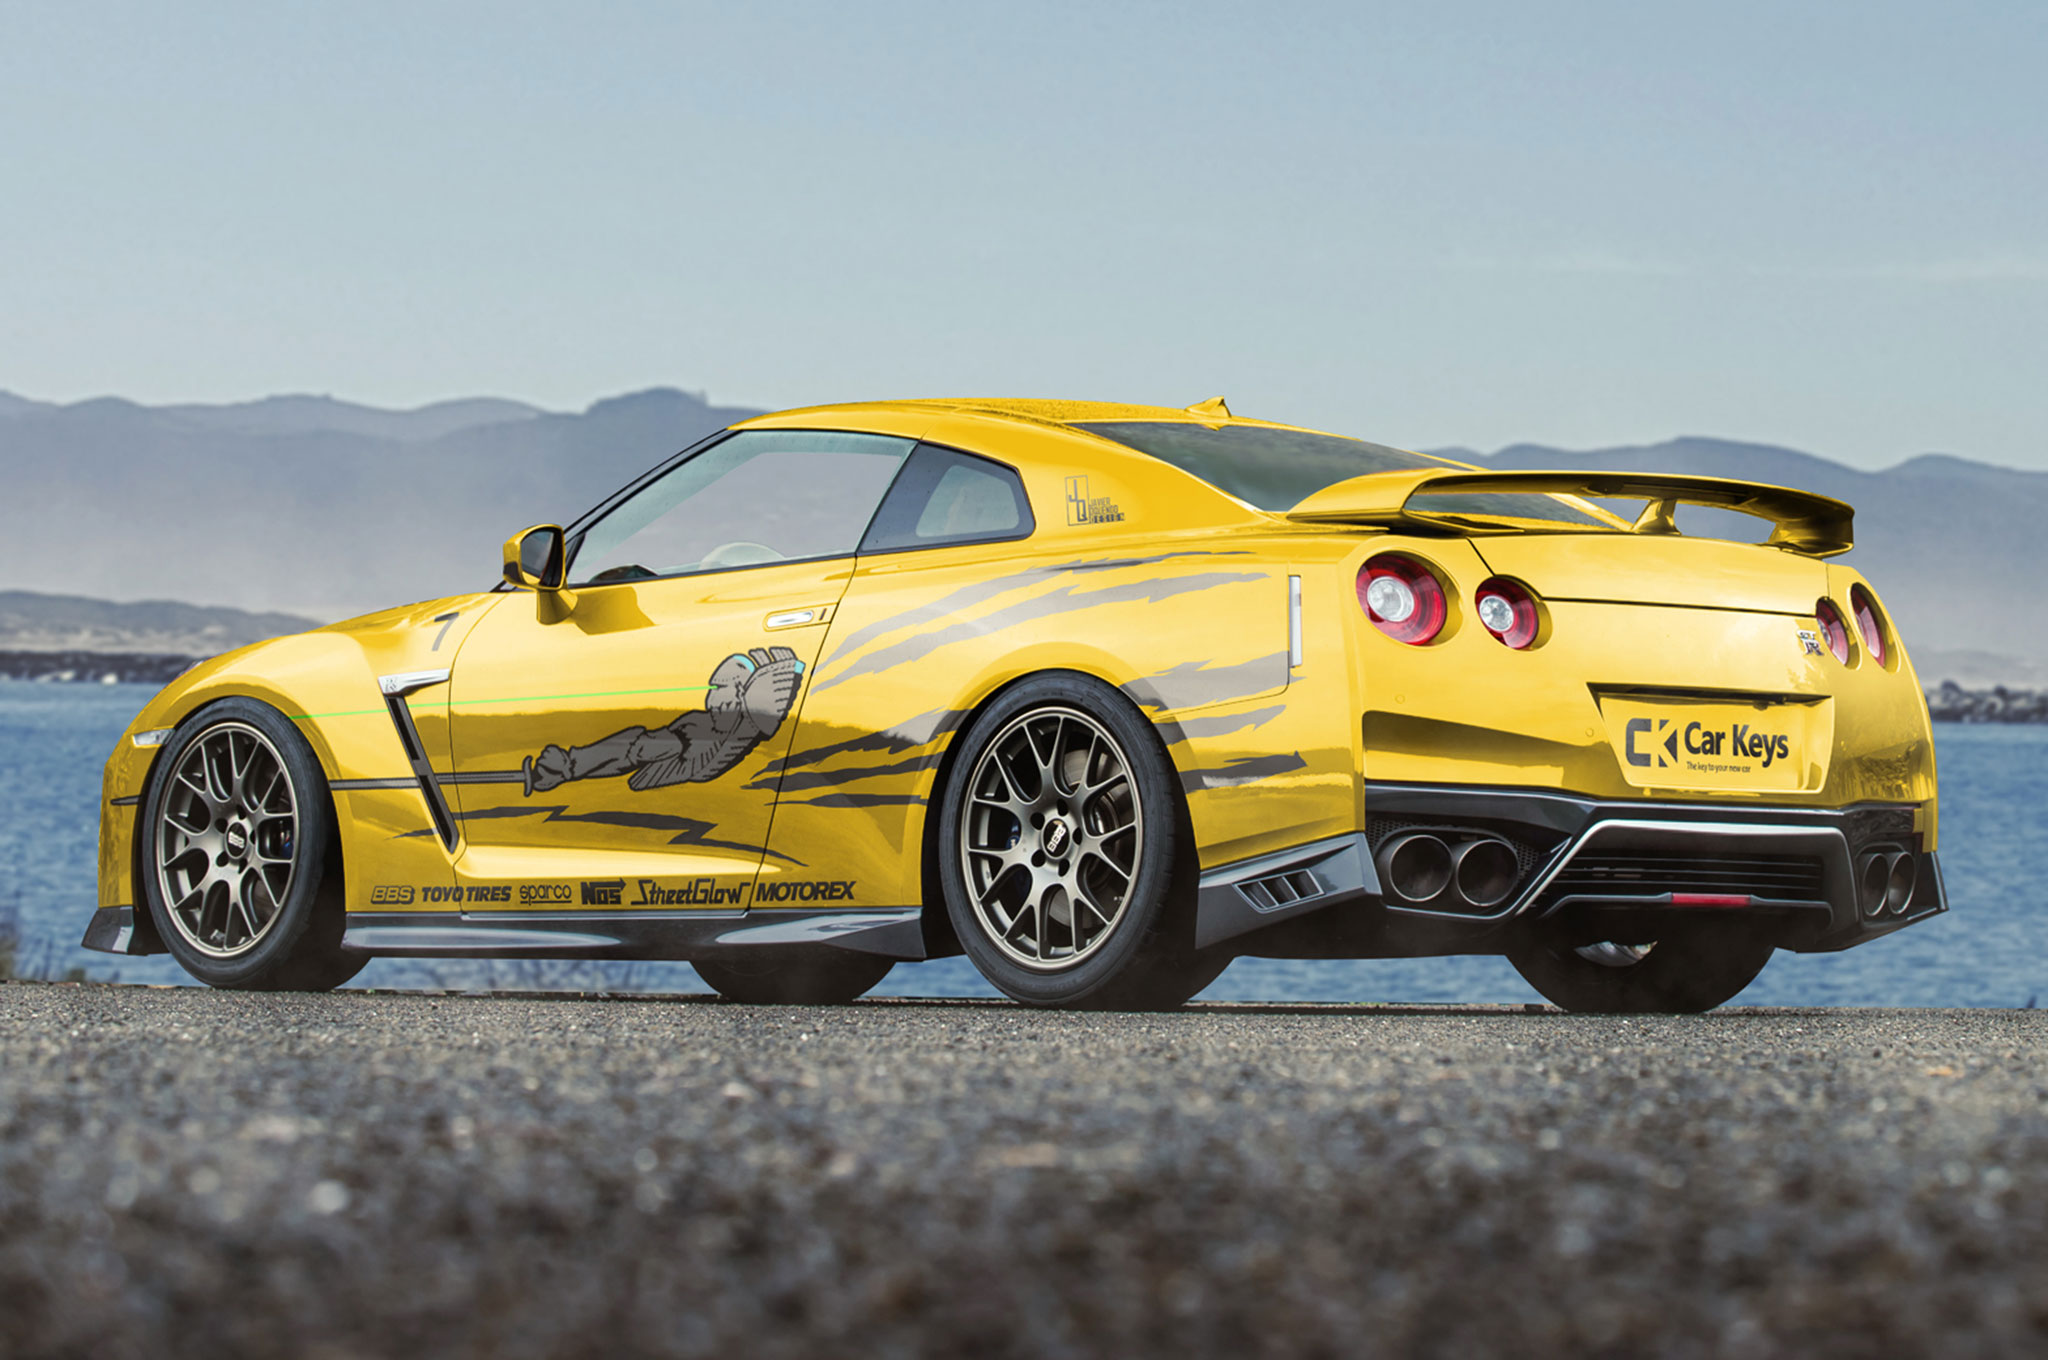 The-Fast-and-the-Furious-modern-renders-Nissan-GT-R